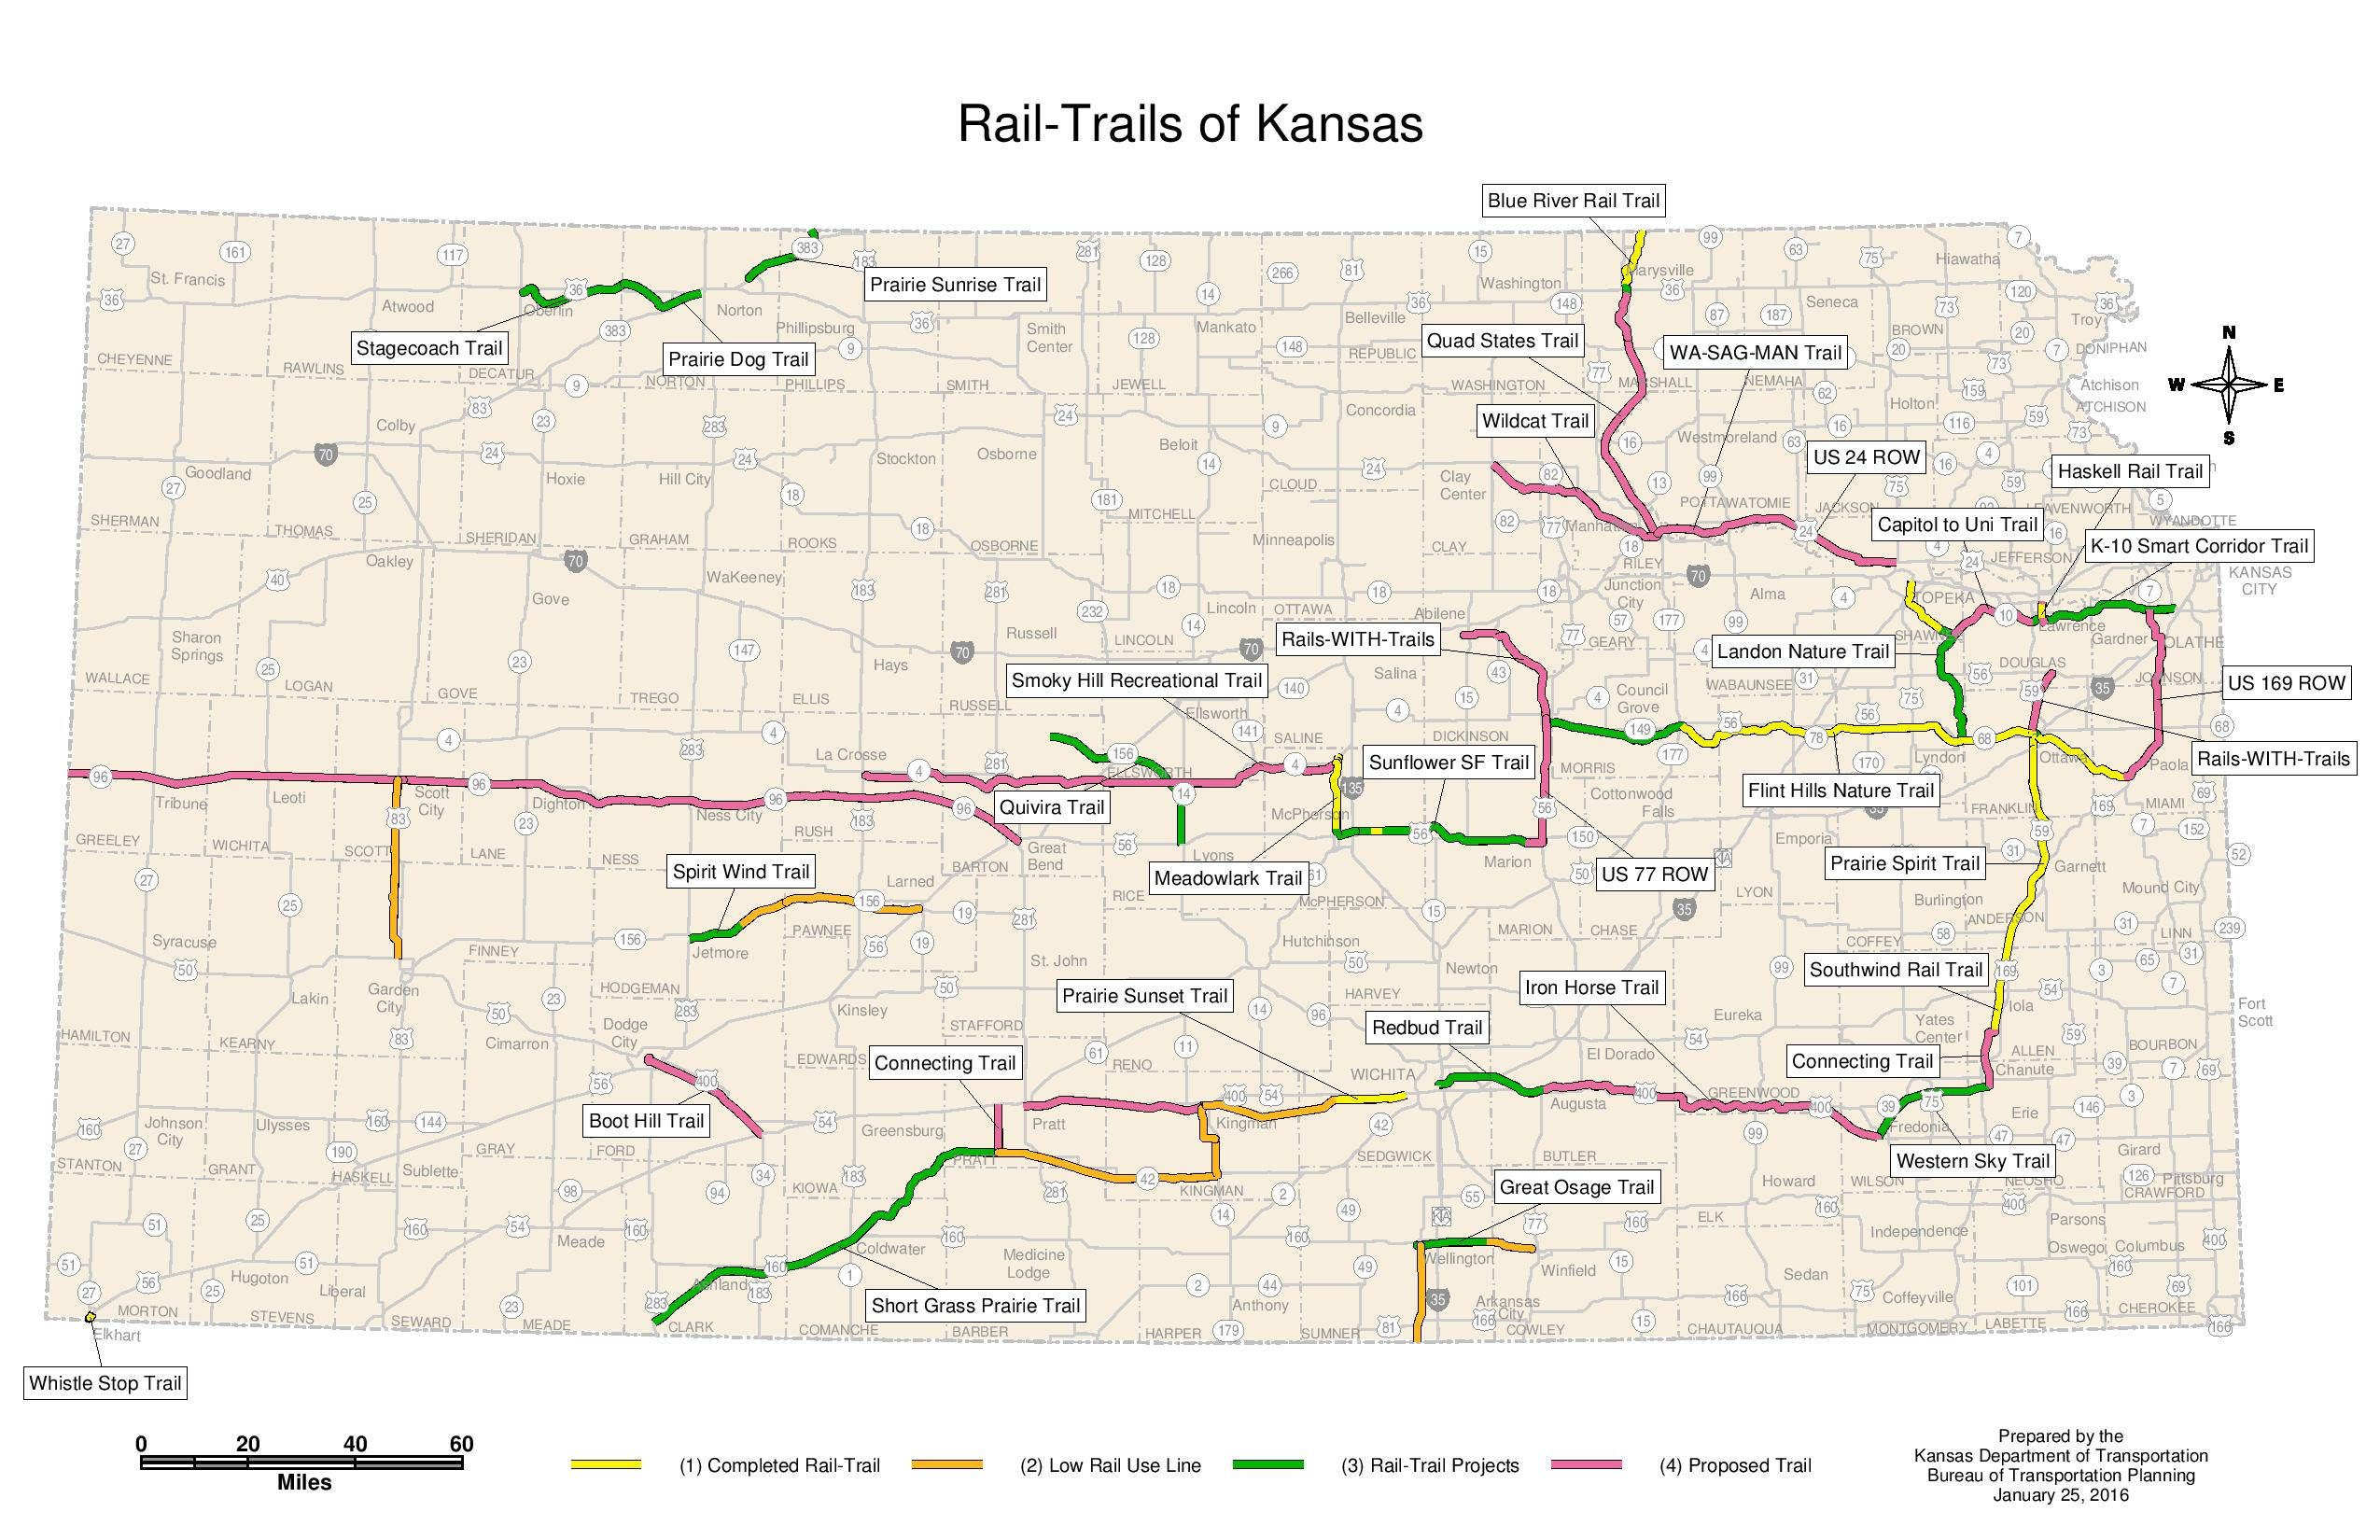 Kansas RailstoTrails Map Kansas Cyclist News - Kansas rivers map